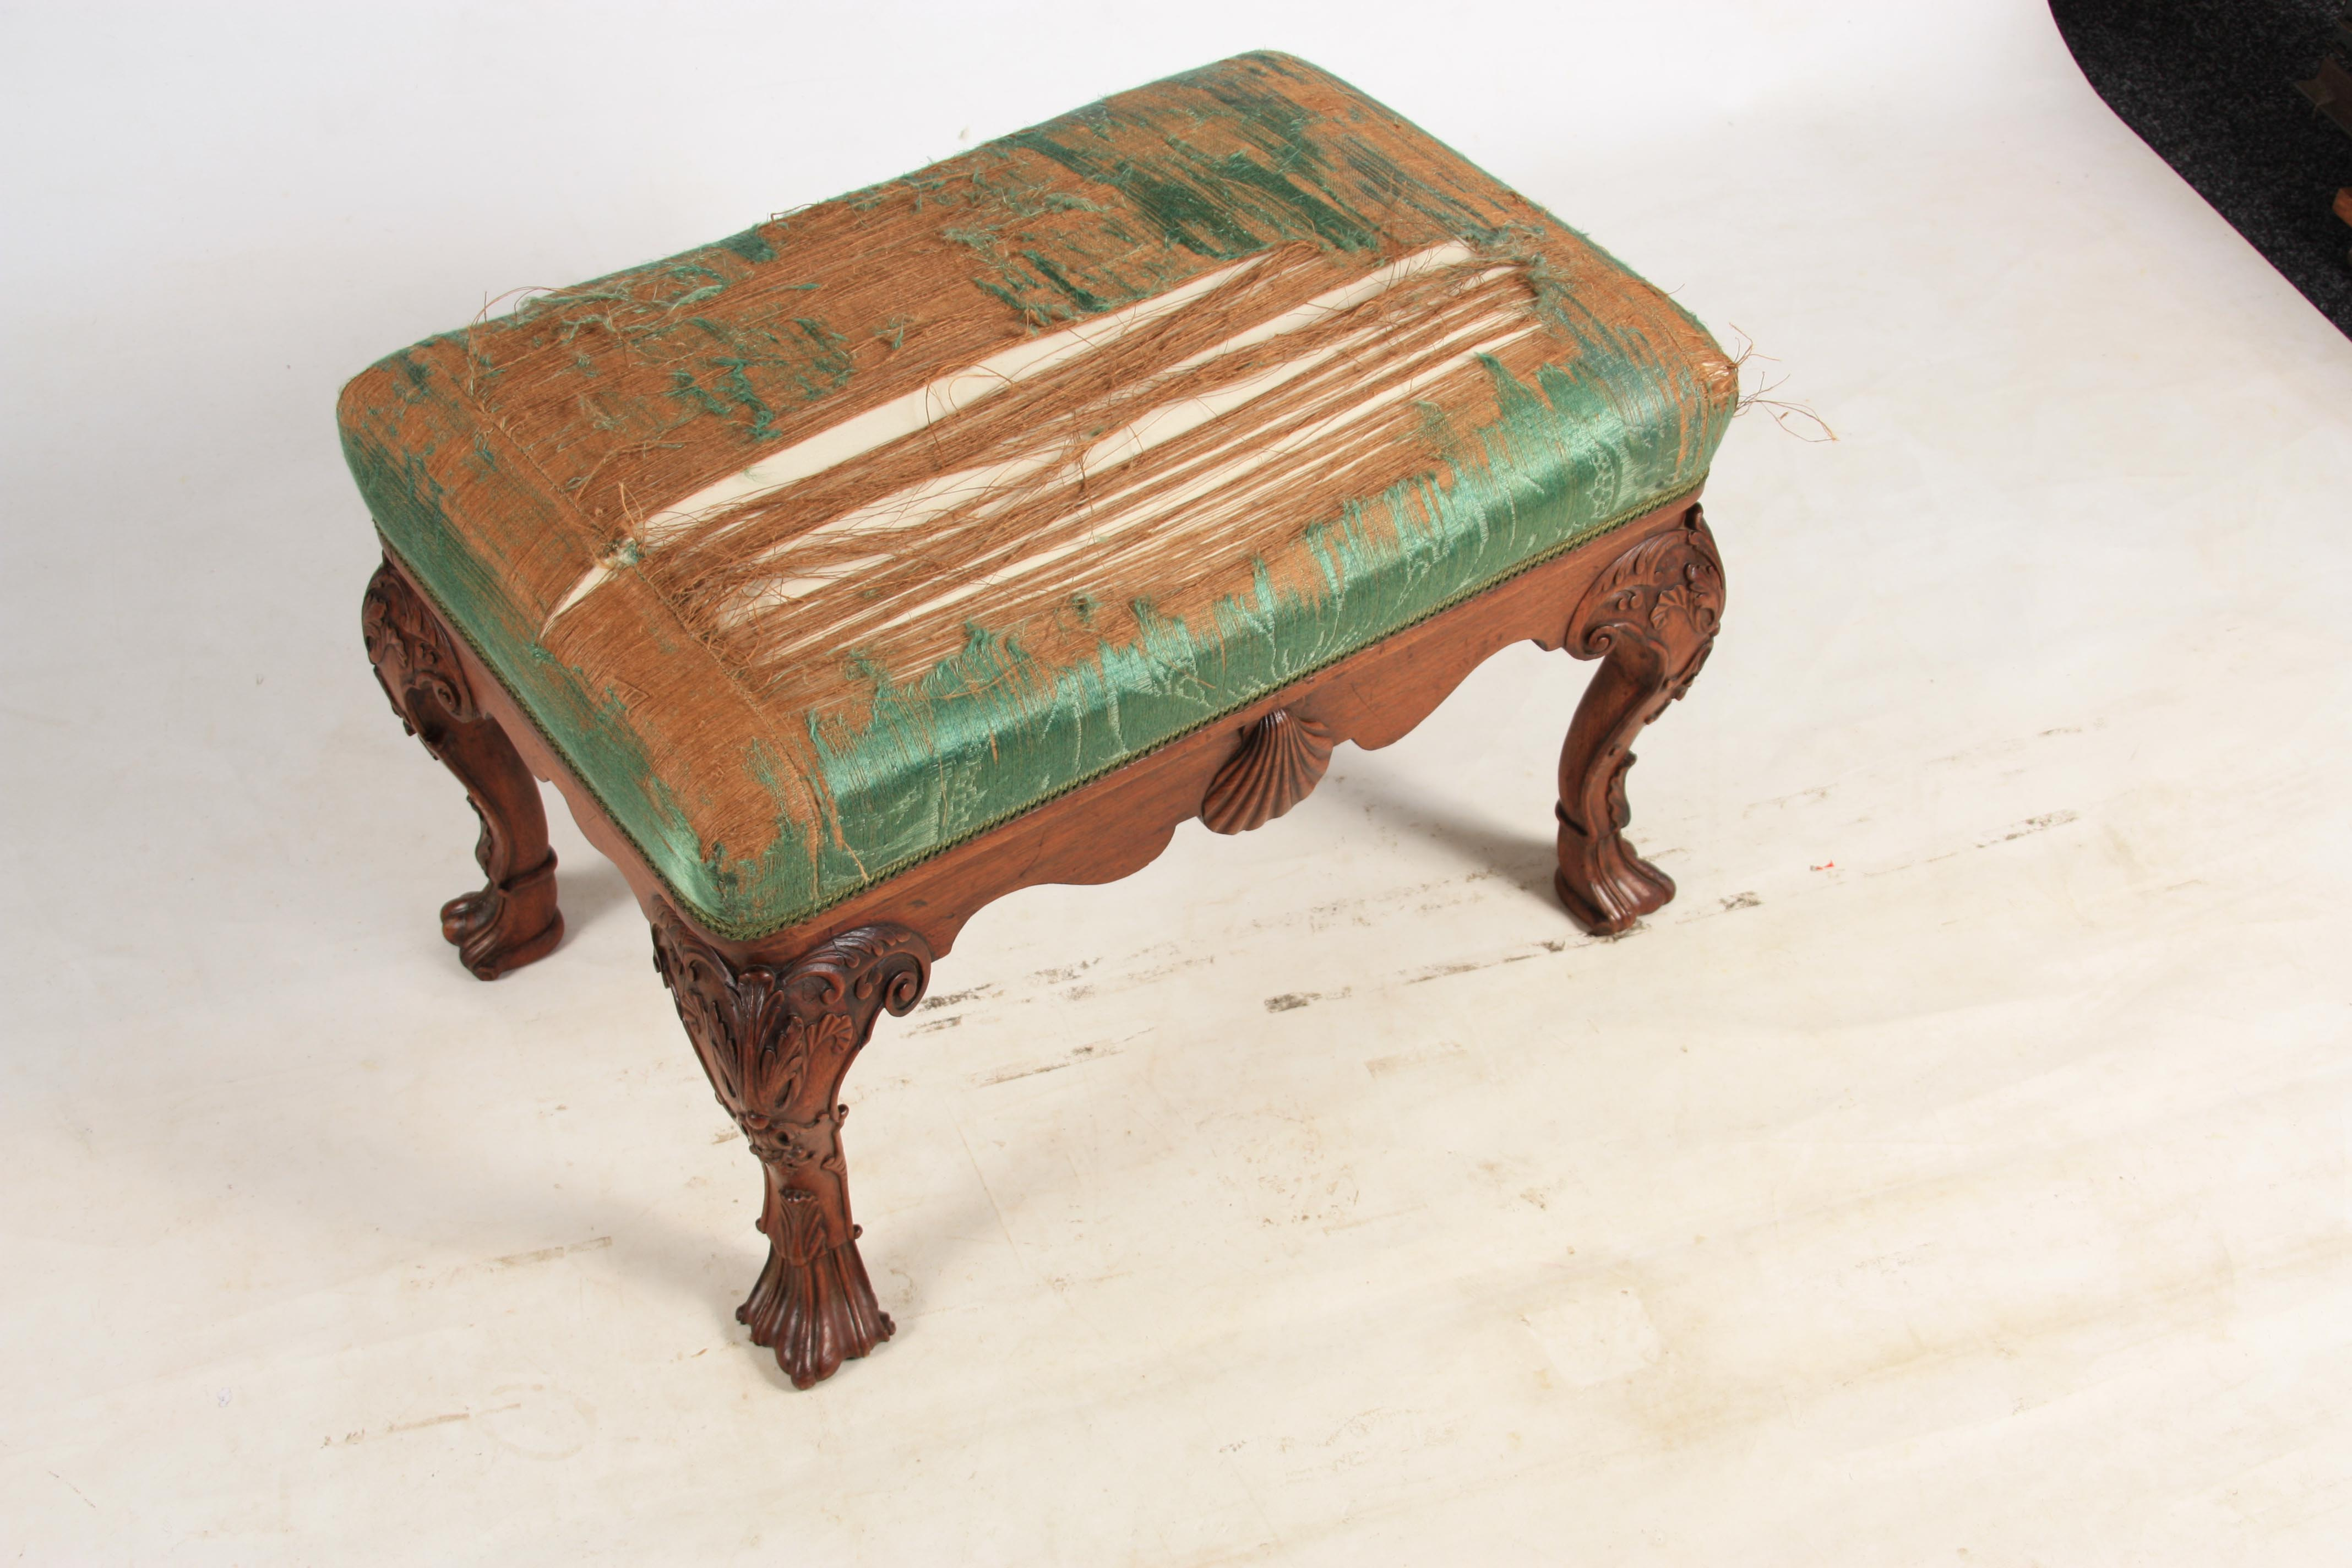 A MID 18TH CENTURY IRISH STYLE MAHOGANY DRESSING TABLE STOOL with upholstered top above shaped rails - Image 3 of 7